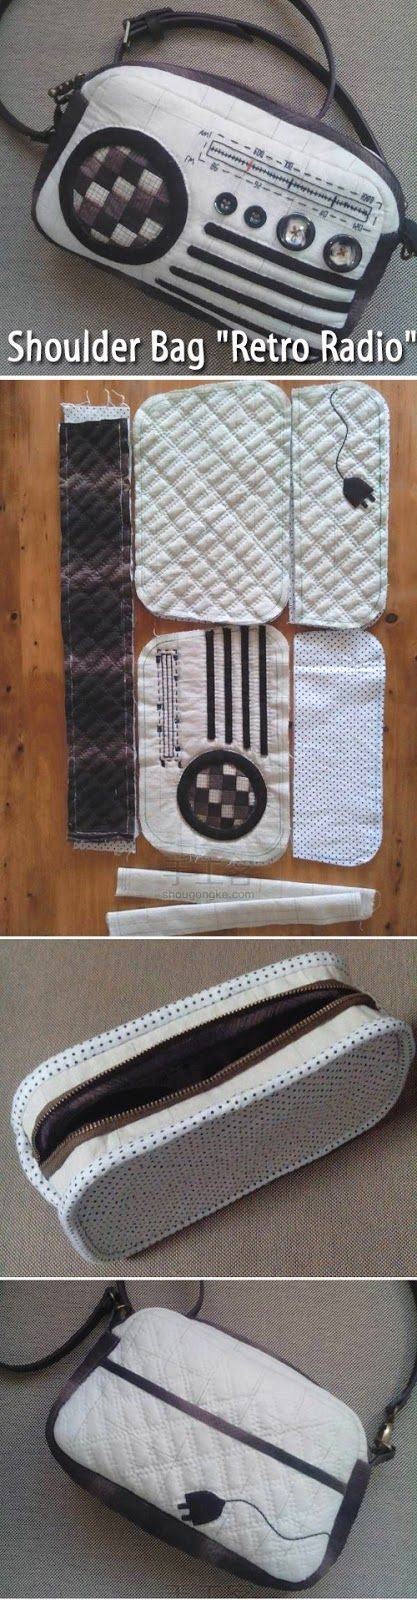 "Shoulder Bag ""Retro radio"". DIY step-by-step tutorial.  http://www.handmadiya.com/2015/08/shoulder-bag-retro-radio.html"